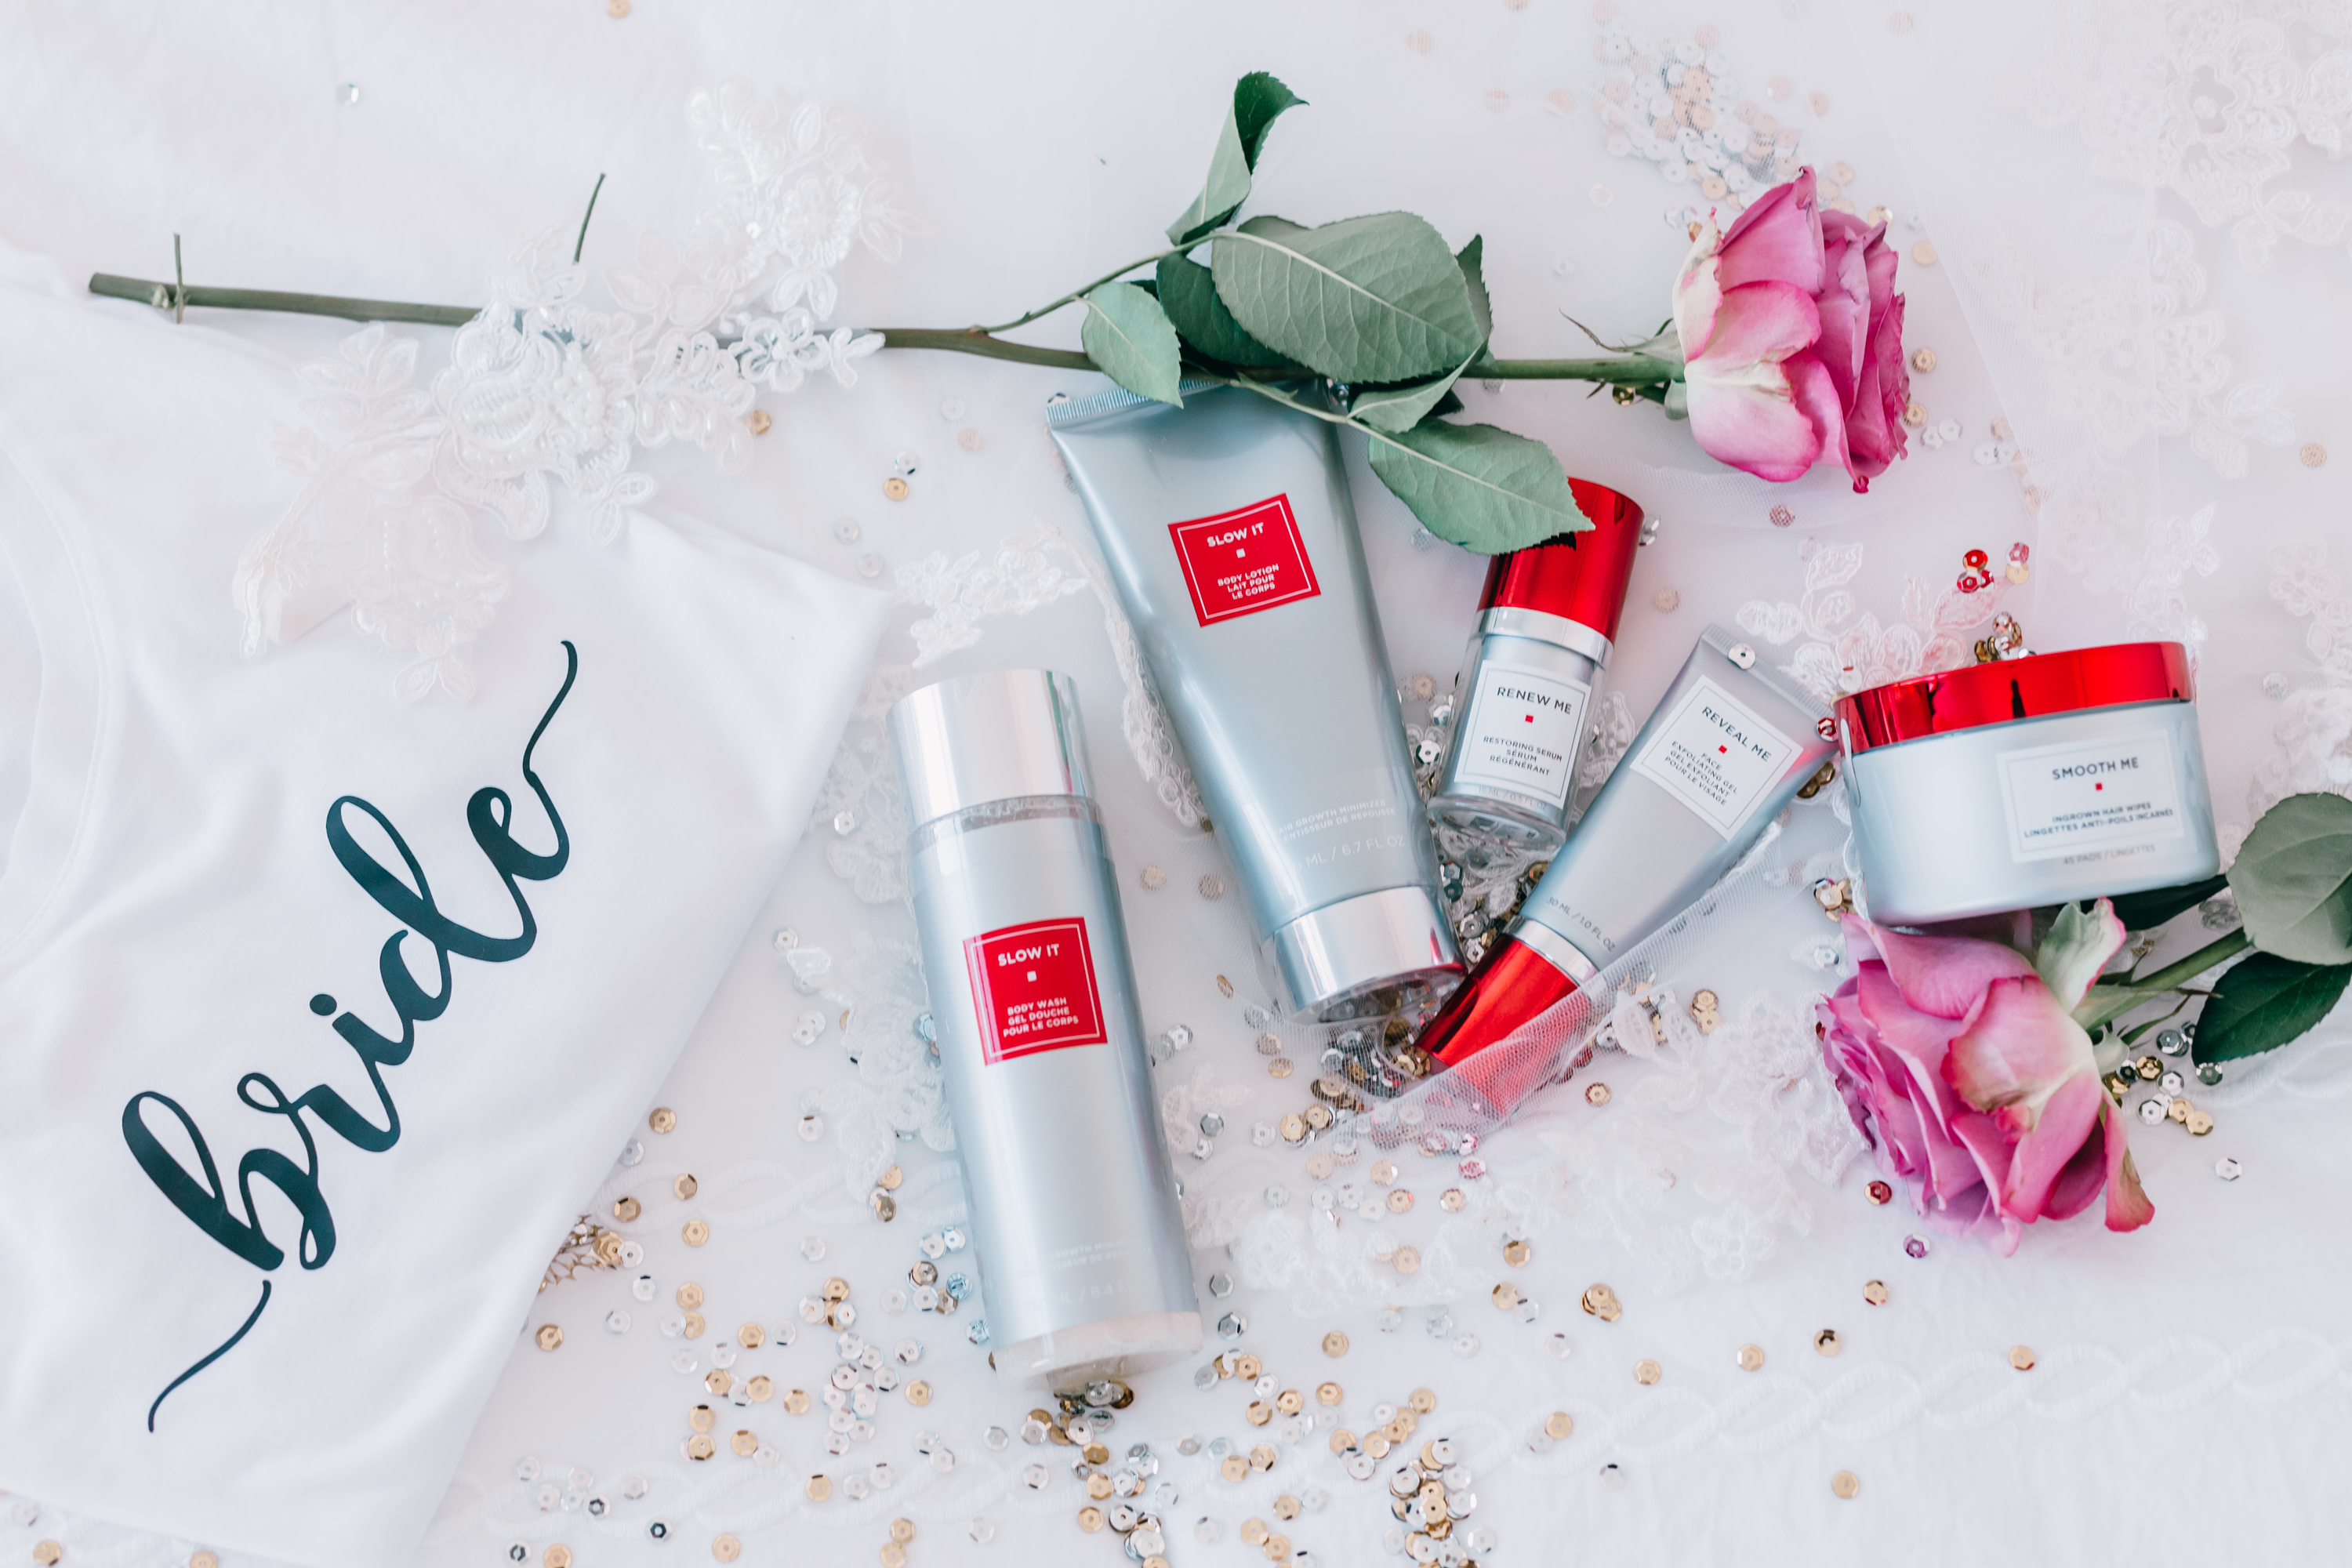 Skin-smoothing products for the bride-to-be from European Wax Center. Photo: @lindsilanestyle